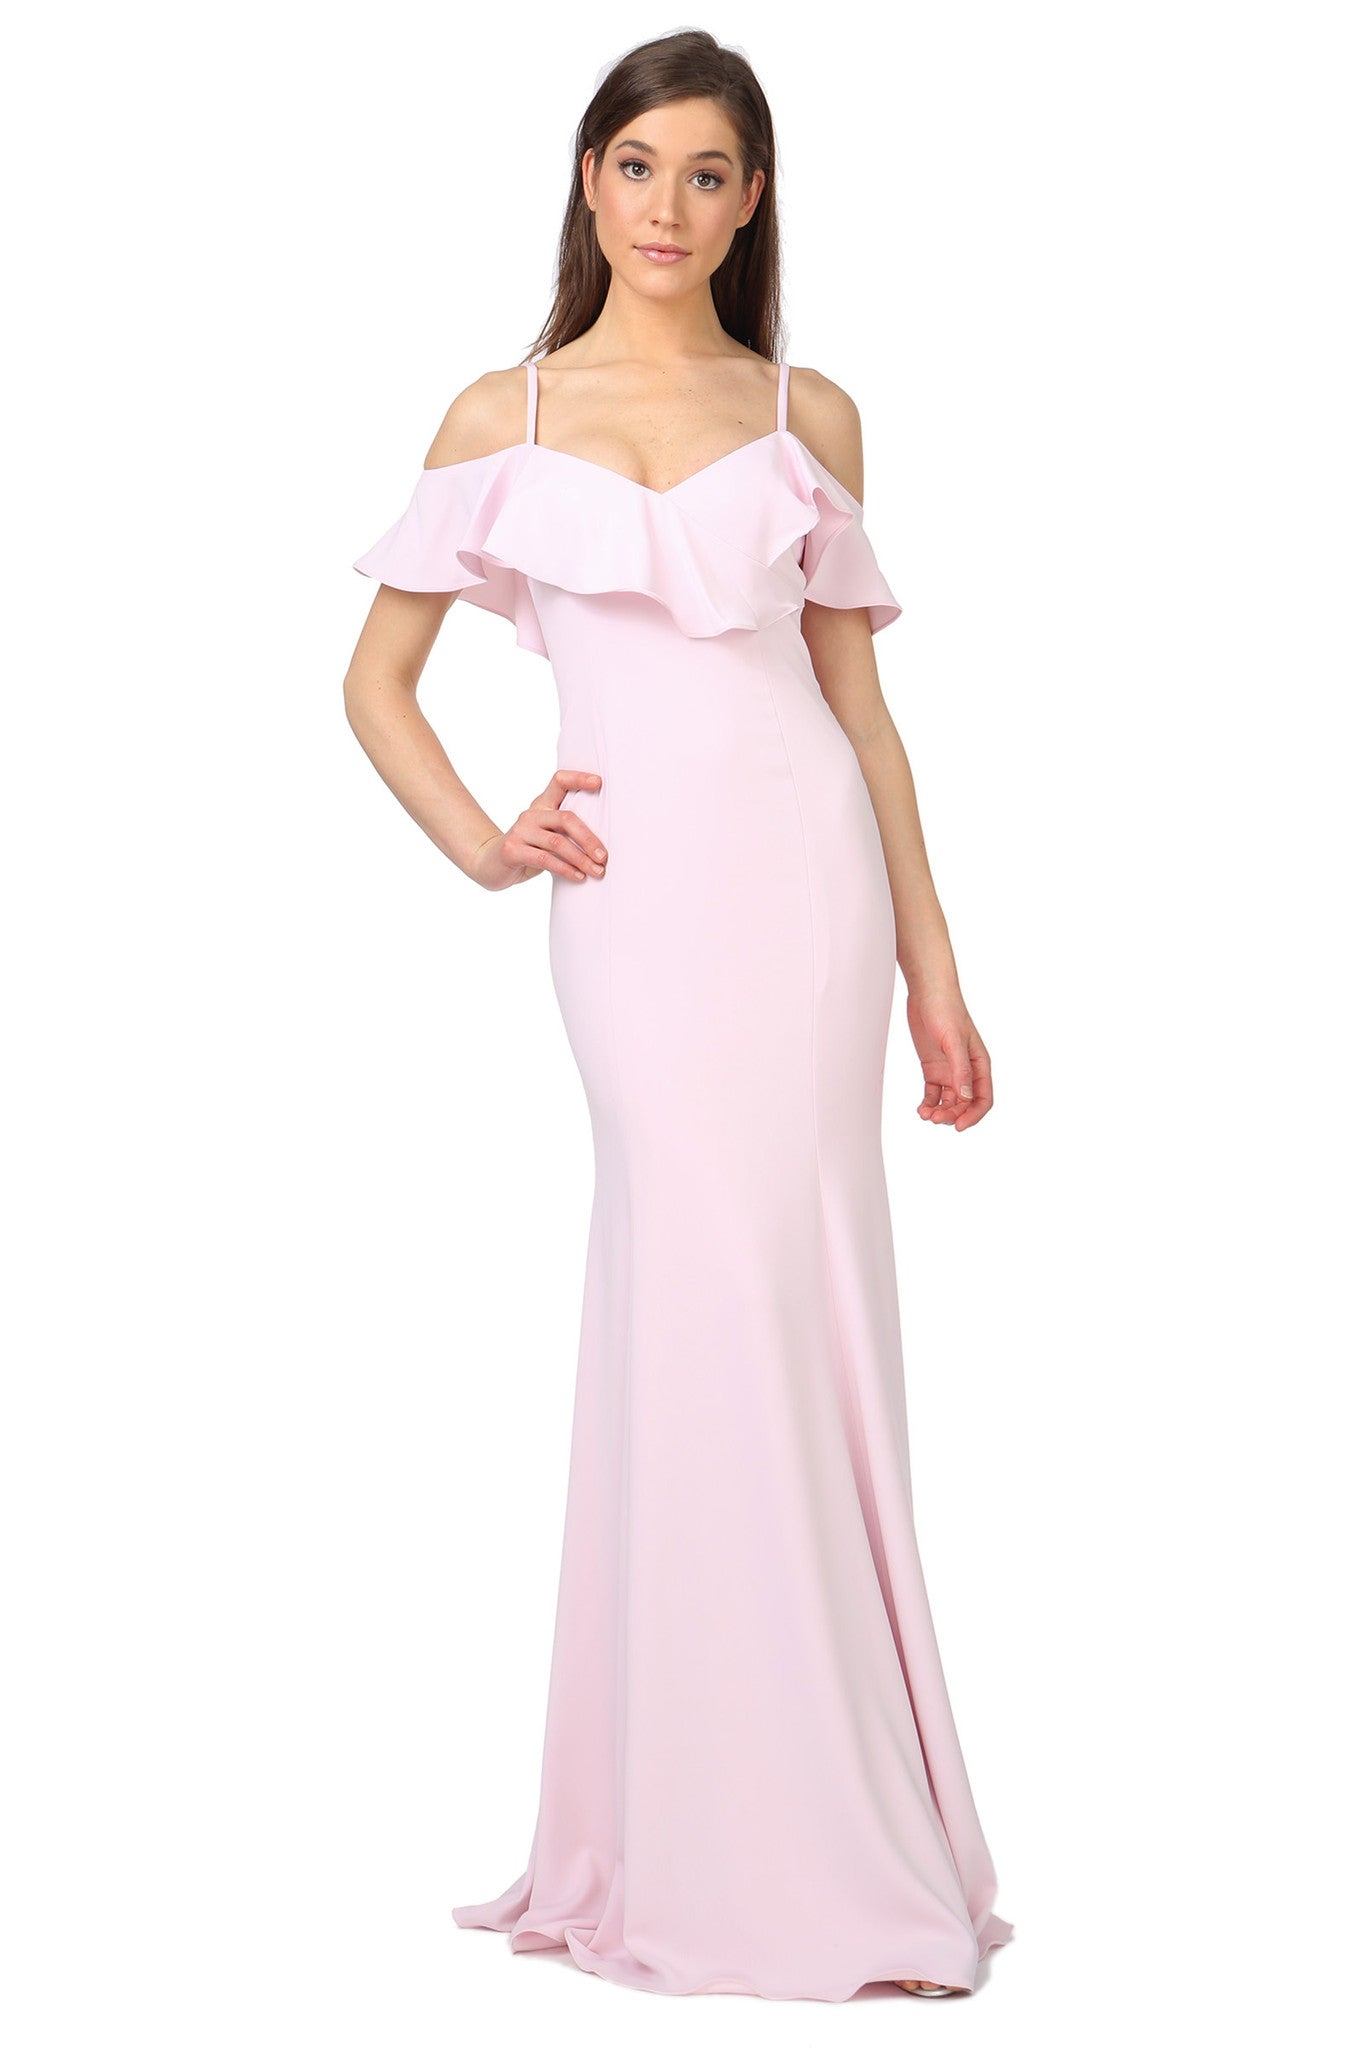 Jay Godfrey Pale Pink Ruffle Gown - Front View